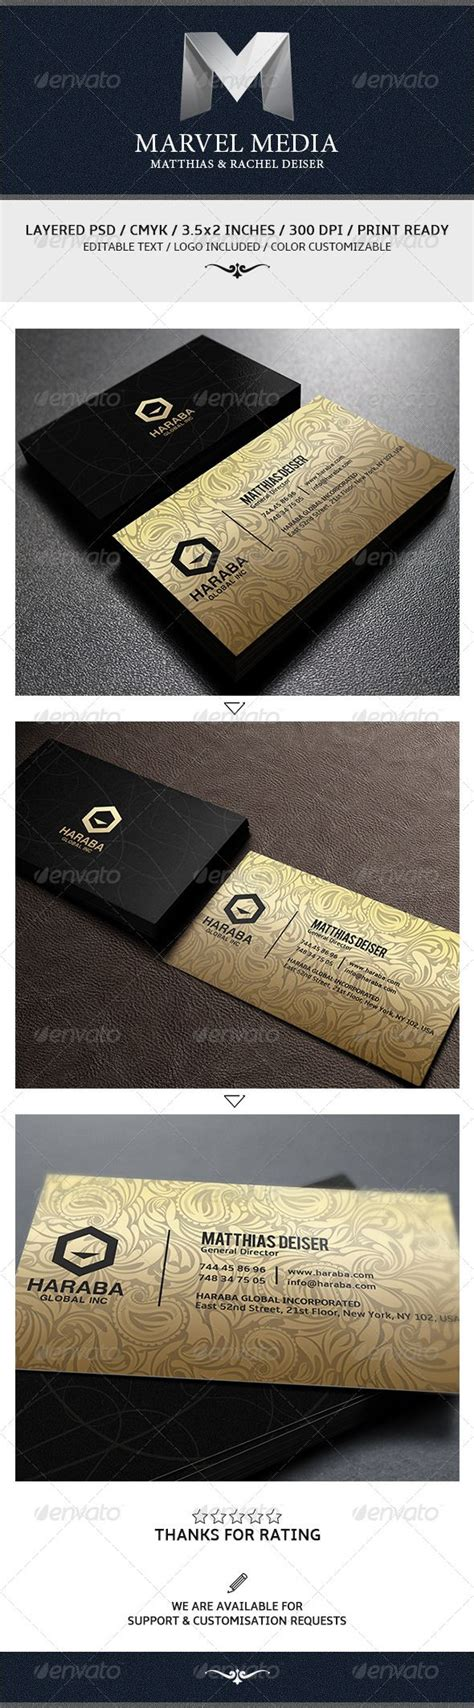 binghamton business card template us army business cards templates gallery card design and